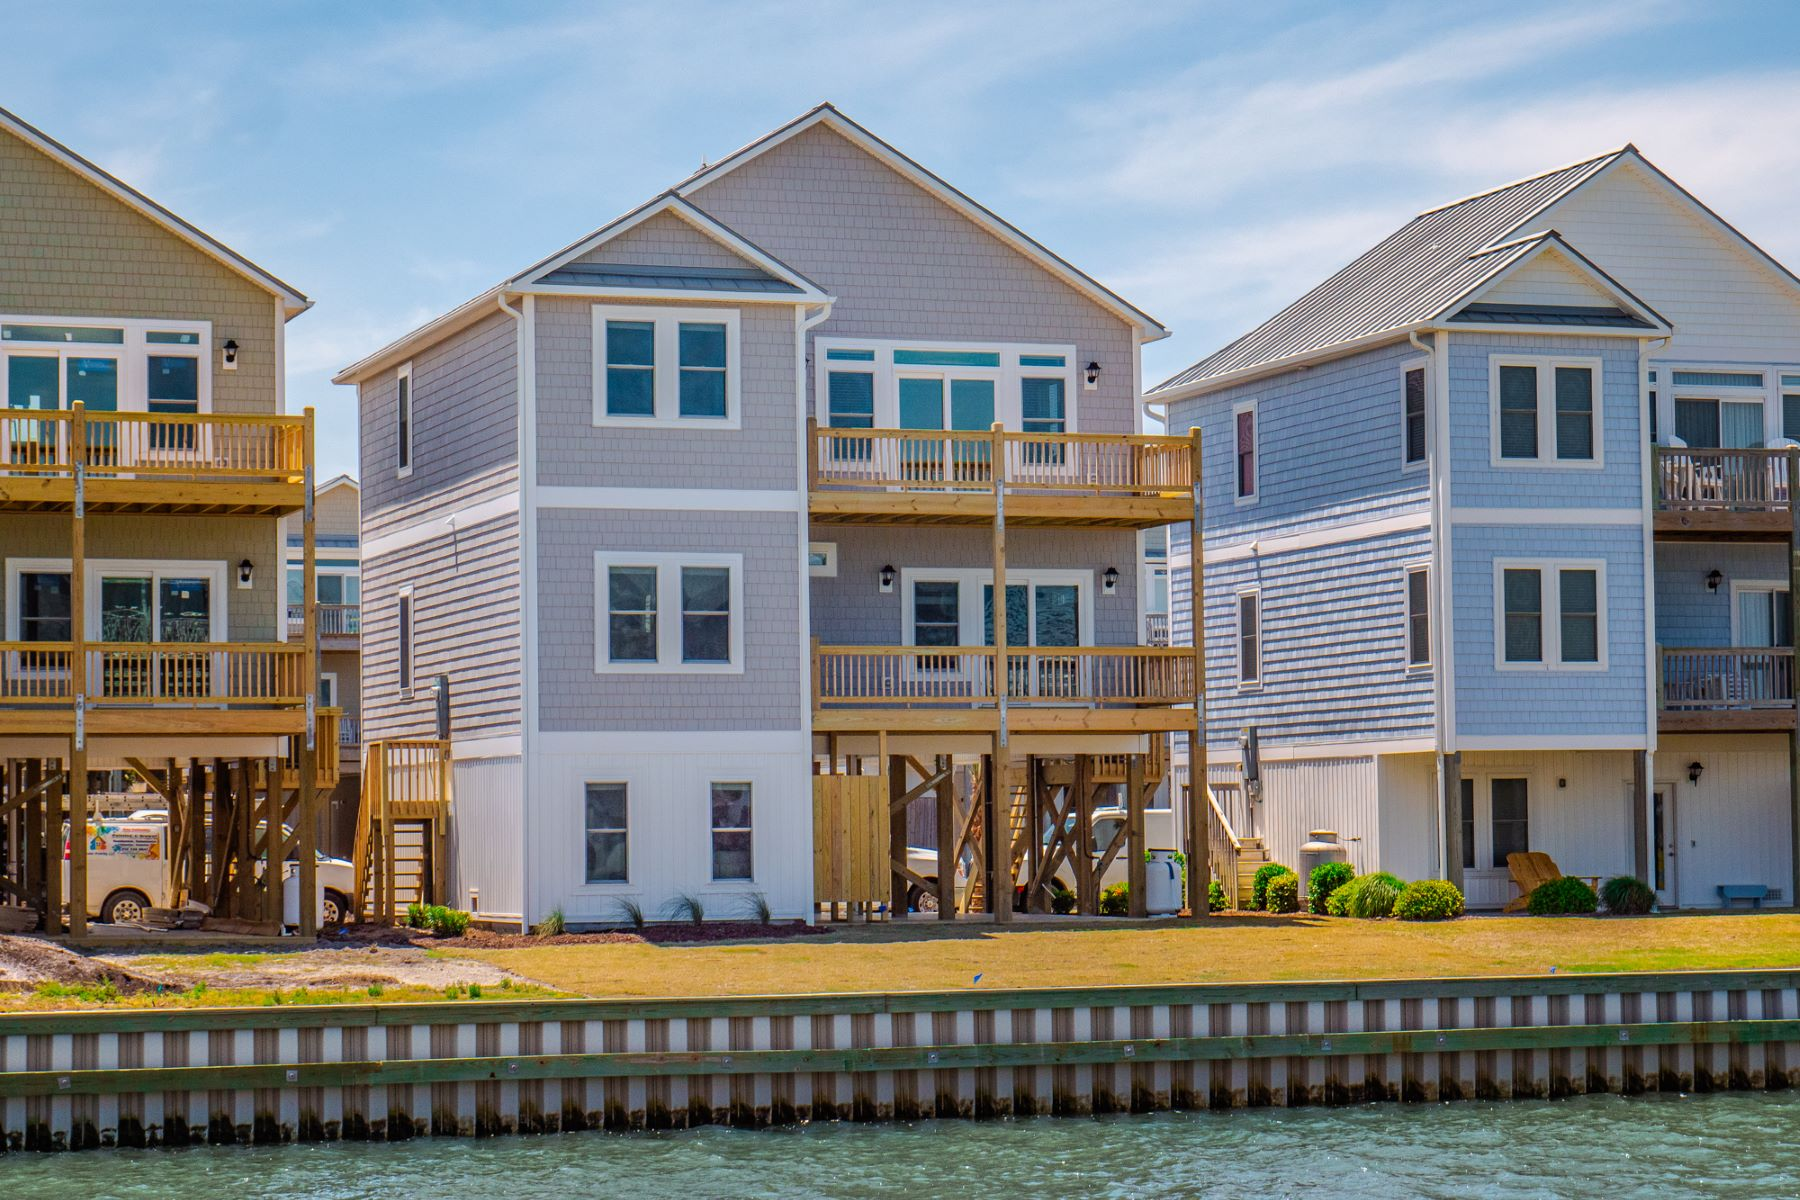 Single Family Homes for Active at Panoramic Views in Topsail Beach 928 Observation Lane Topsail Beach, North Carolina 28445 United States